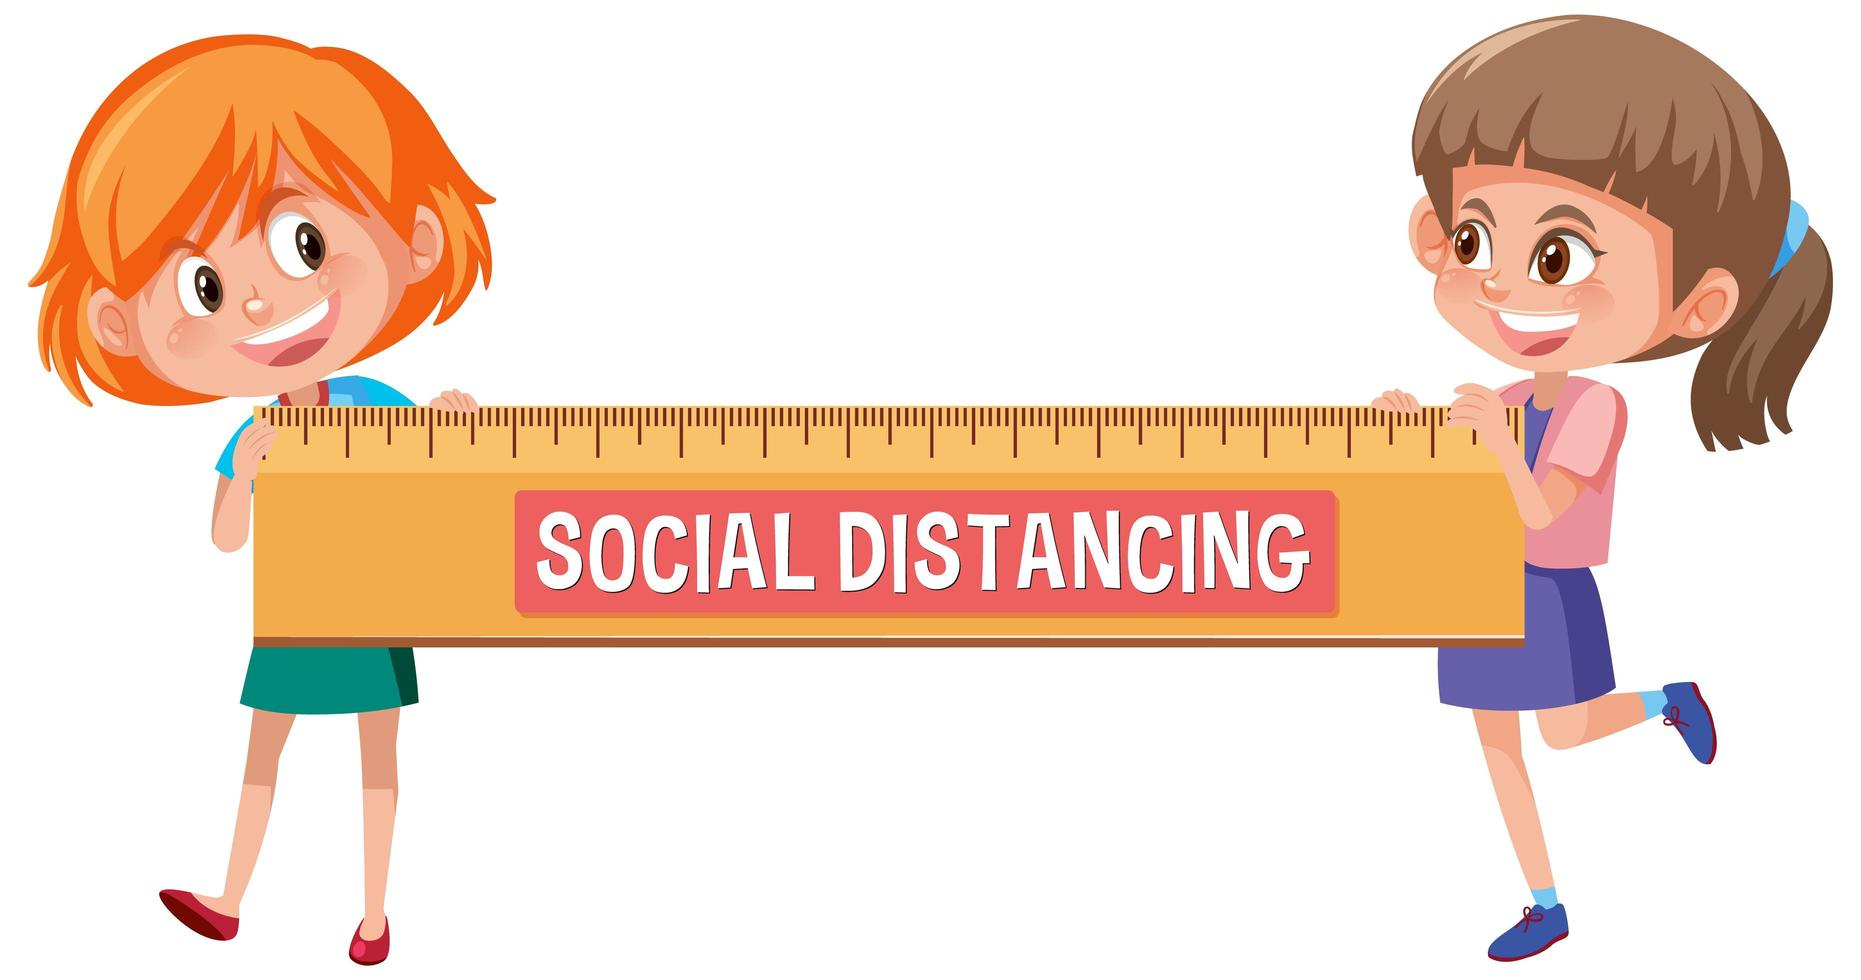 Social Distancing with Two Happy Girls Holding Big Ruler vector